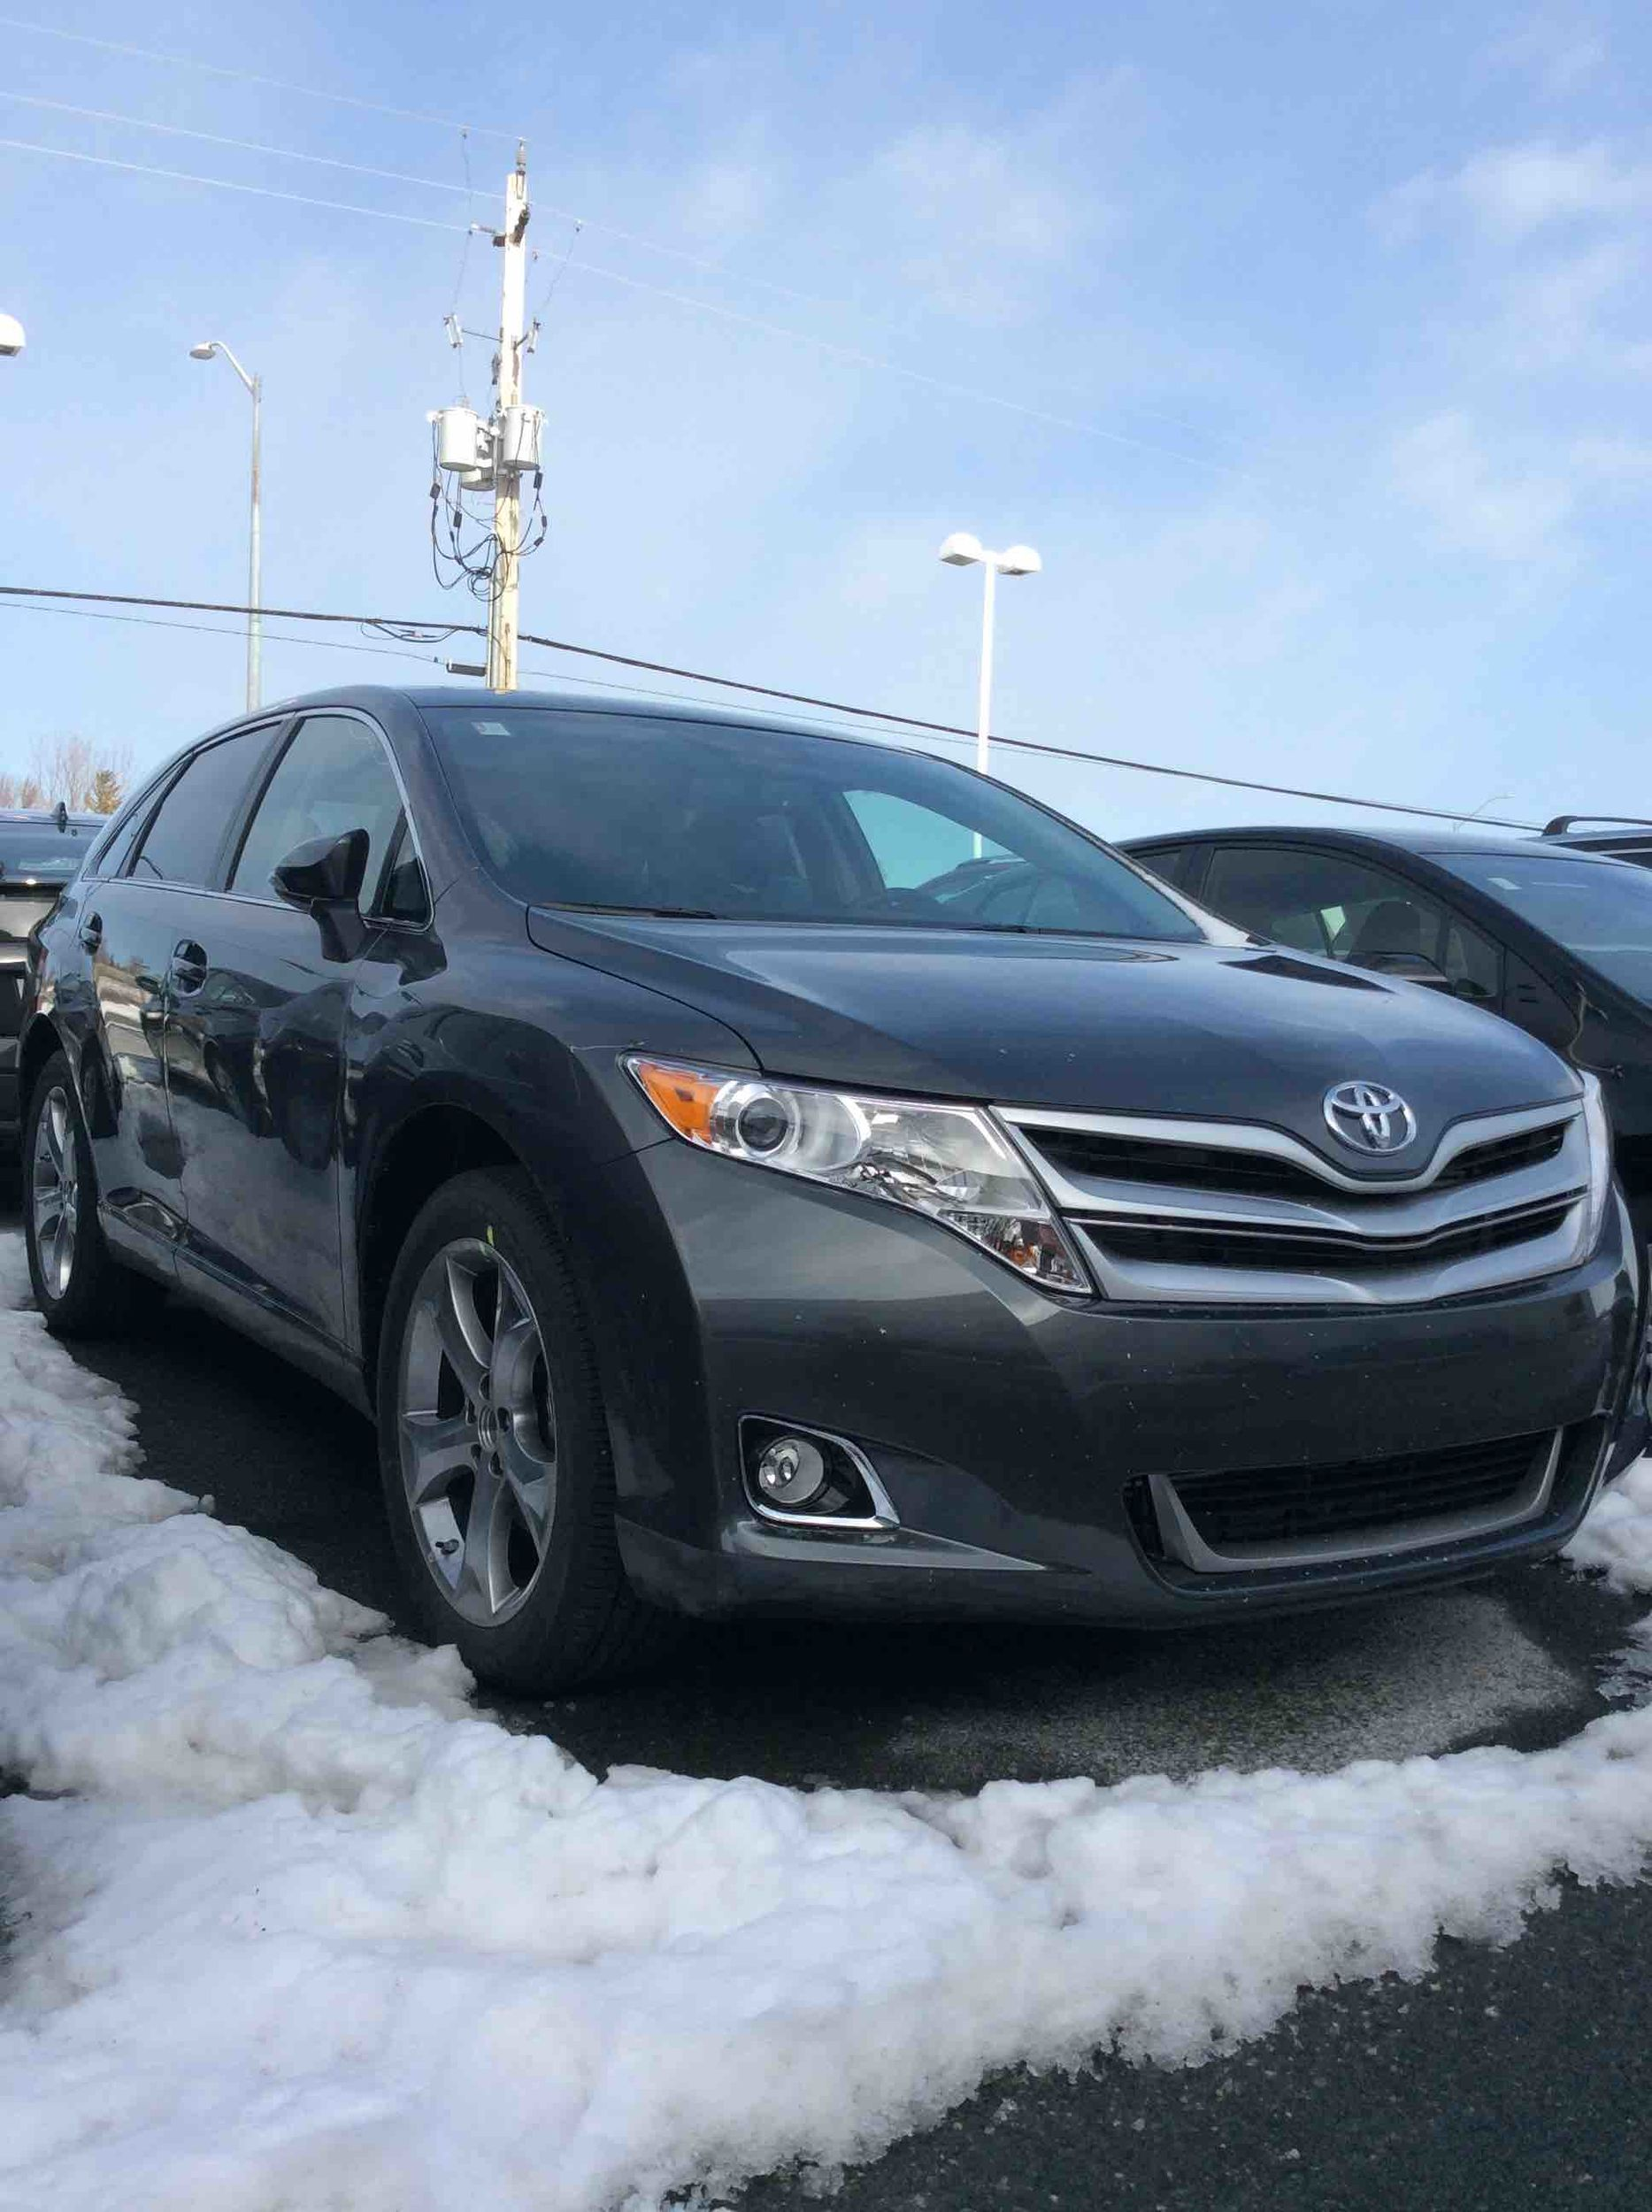 limbaugh differences vs toyota reviews highlander venza sequoia